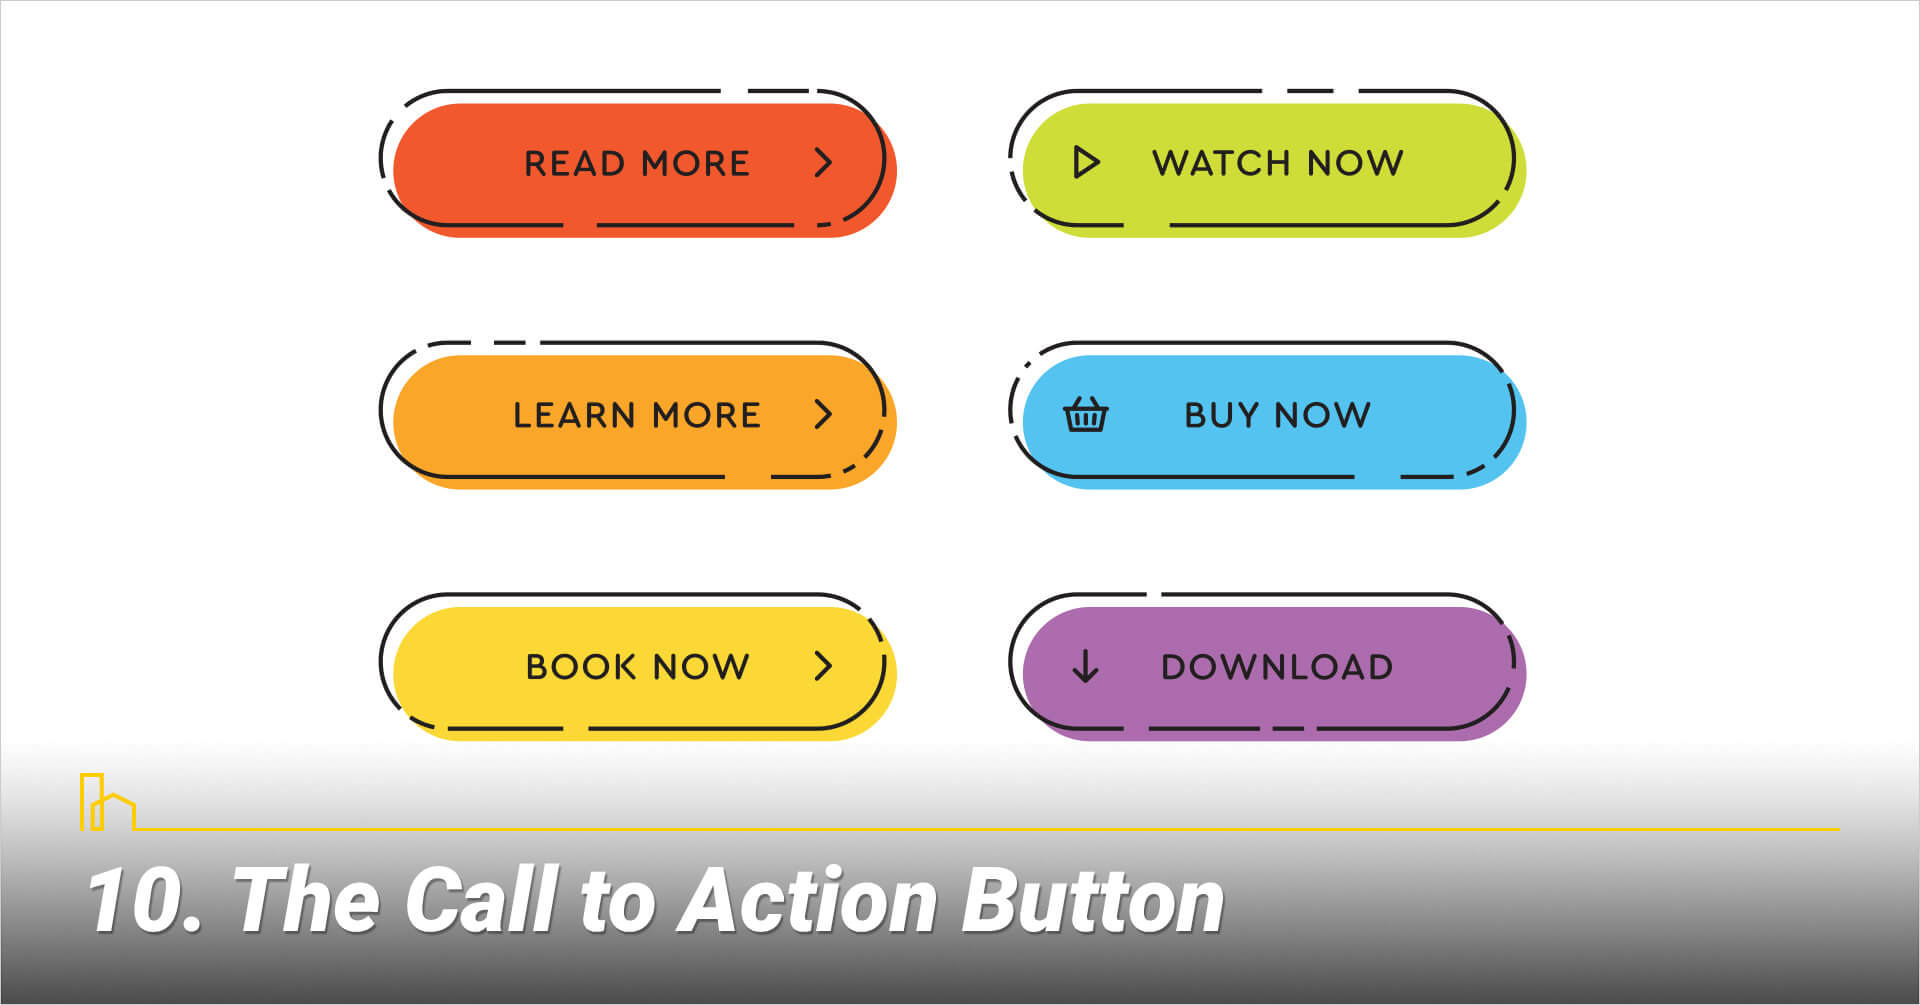 The Call to Action Button